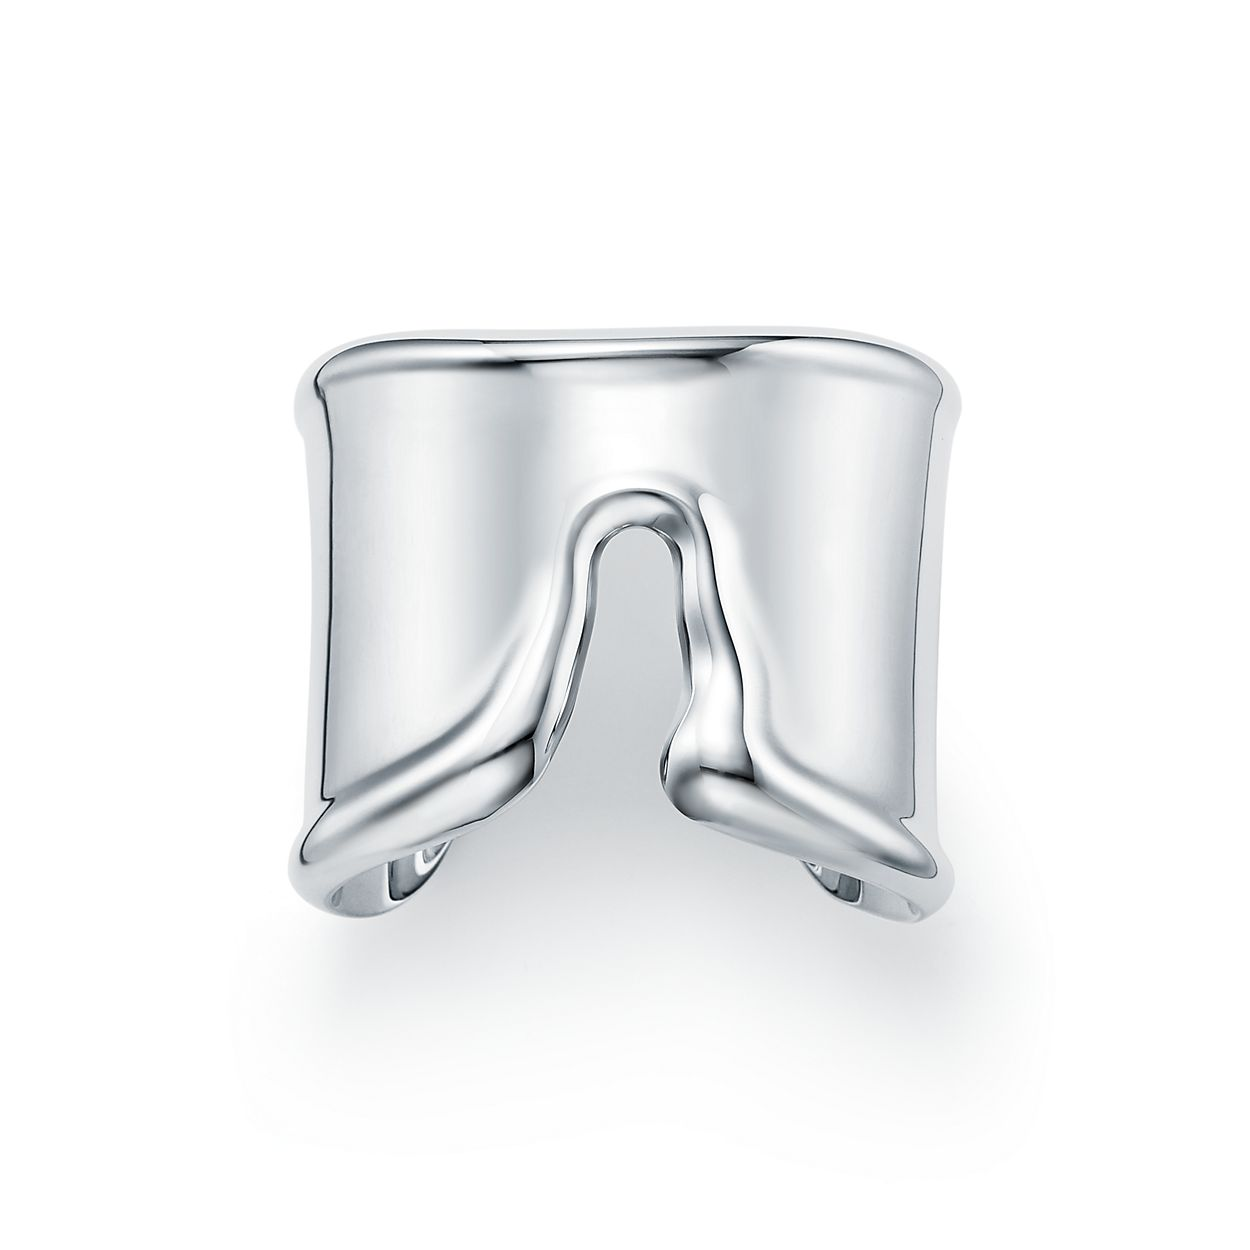 Elsa Peretti Bone cuff in sterling silver, medium, left wrist - Size Medium Tiffany & Co.